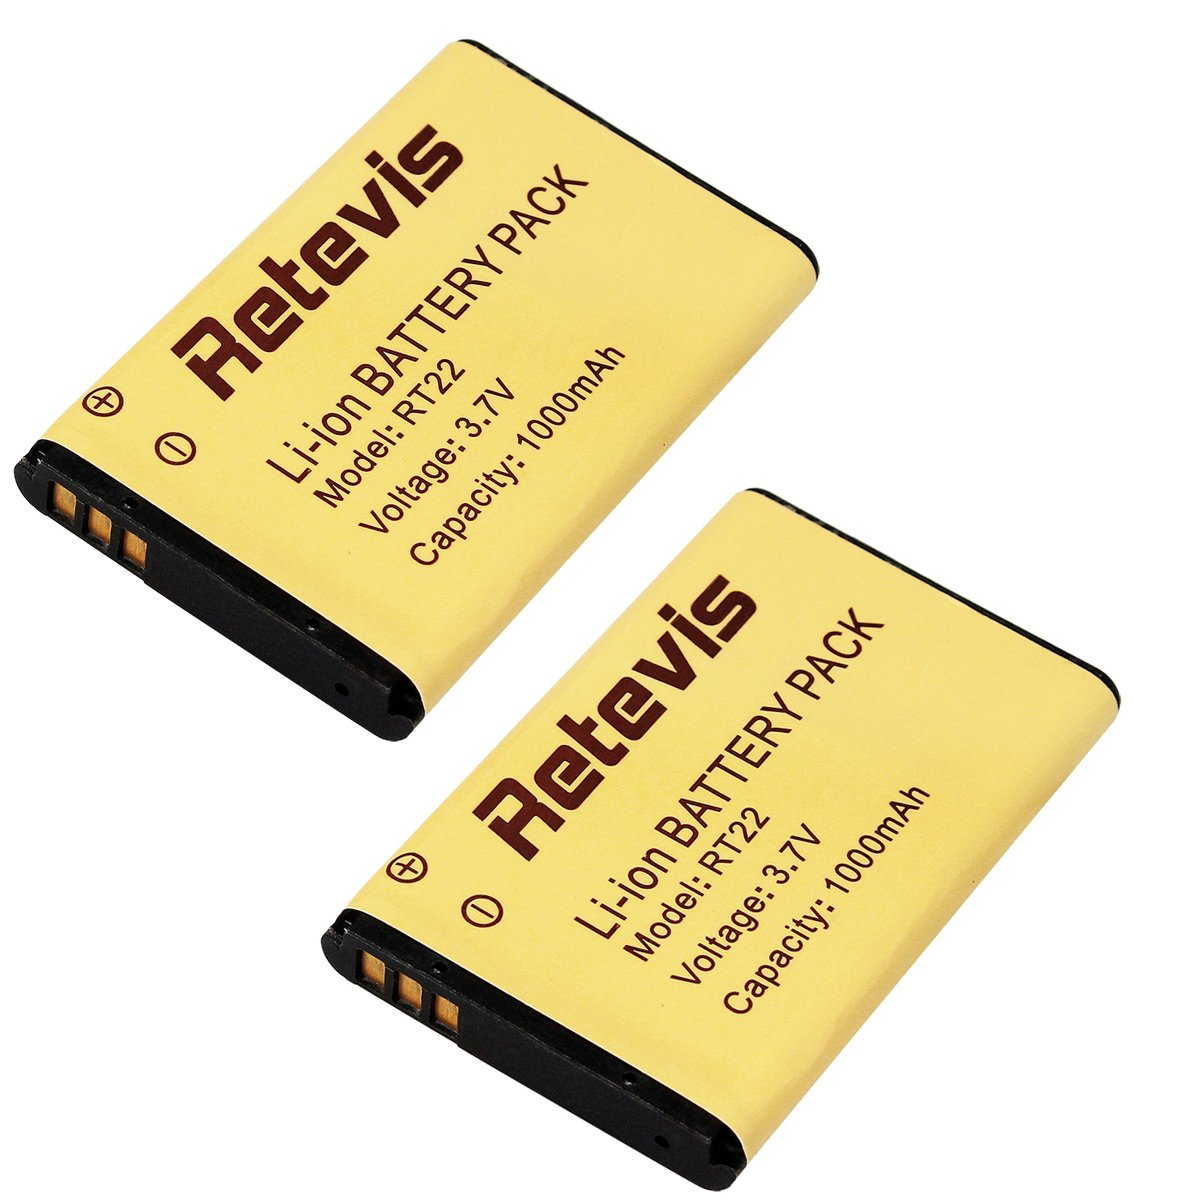 Retevis RT22 Walkie Talkie Battery Original Li-ion Battery 3.7V 1000mAh for Retevis RT22 WLN KD-C1 Two Way Radio(2 Pack)